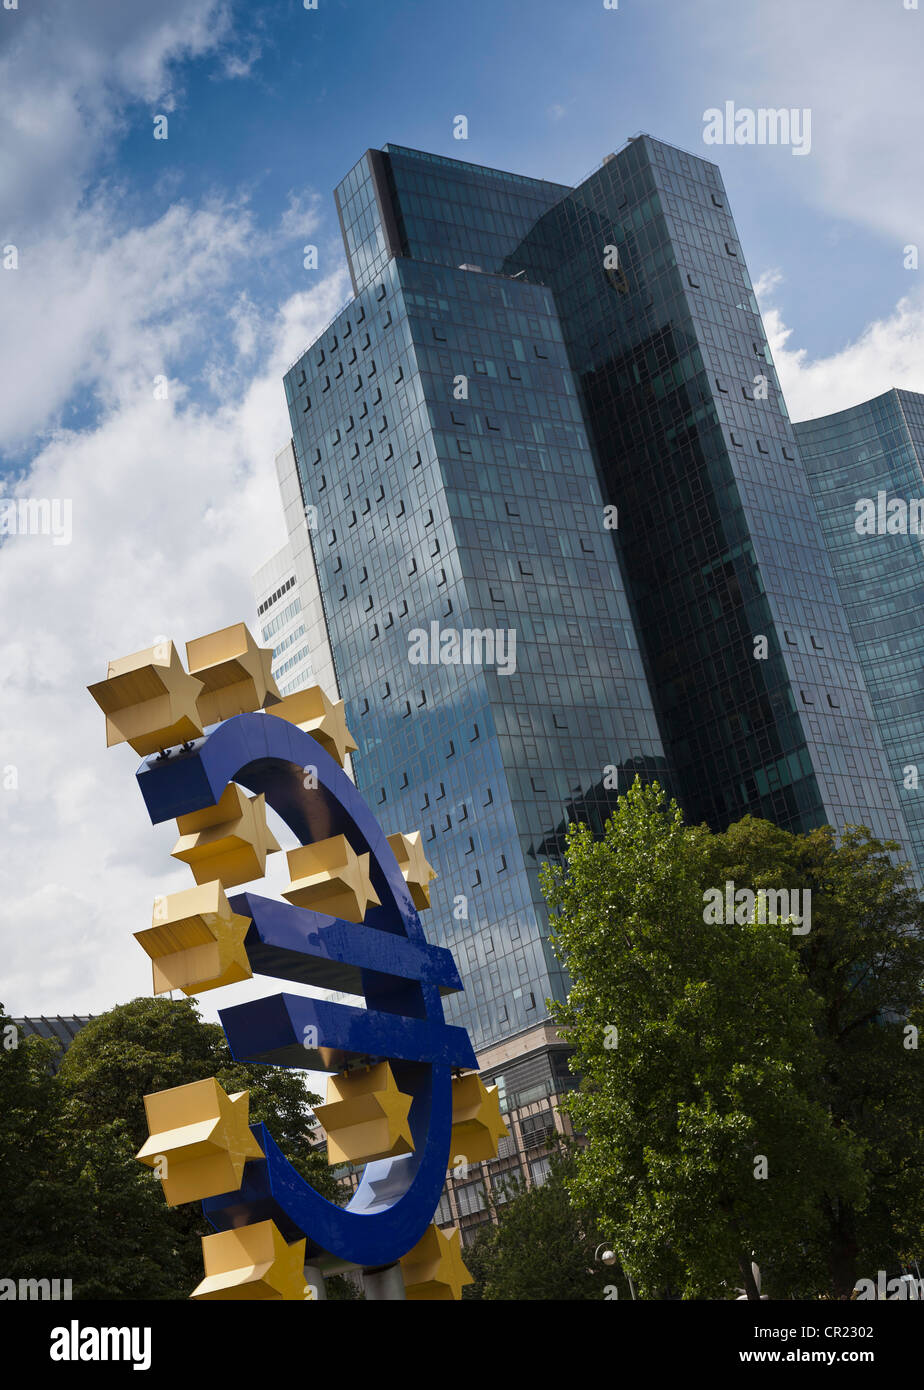 Sculpture de symbole de l'Euro en centre ville Photo Stock